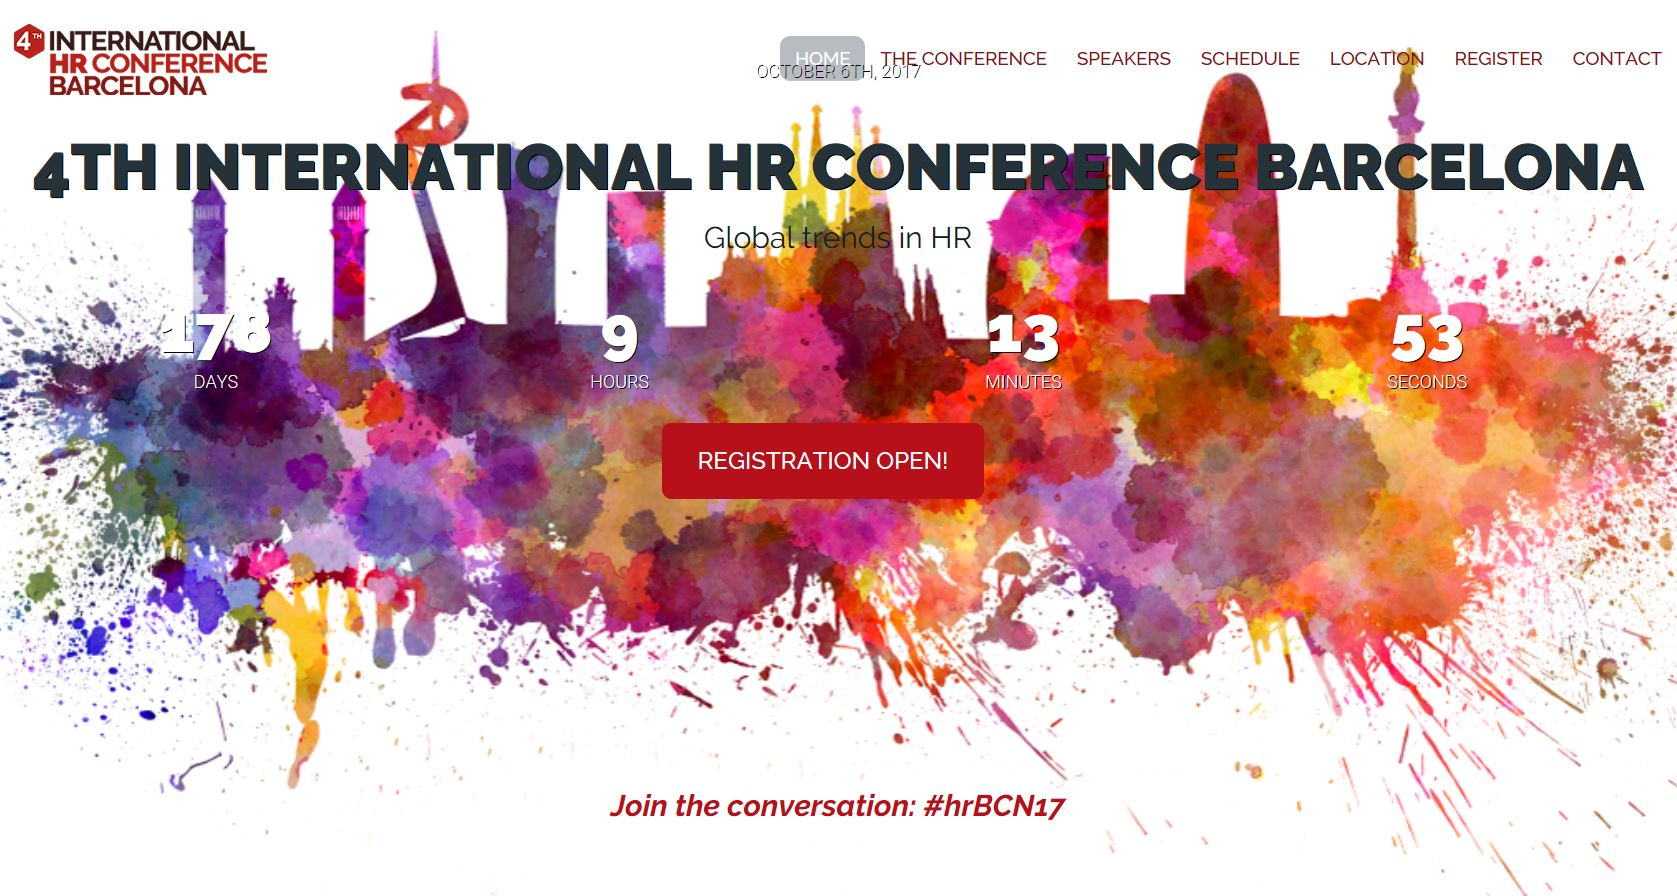 HR conference Barcelona - 4th International HR Conference Barcelona - Internet E_2017-04-10_16-46-07